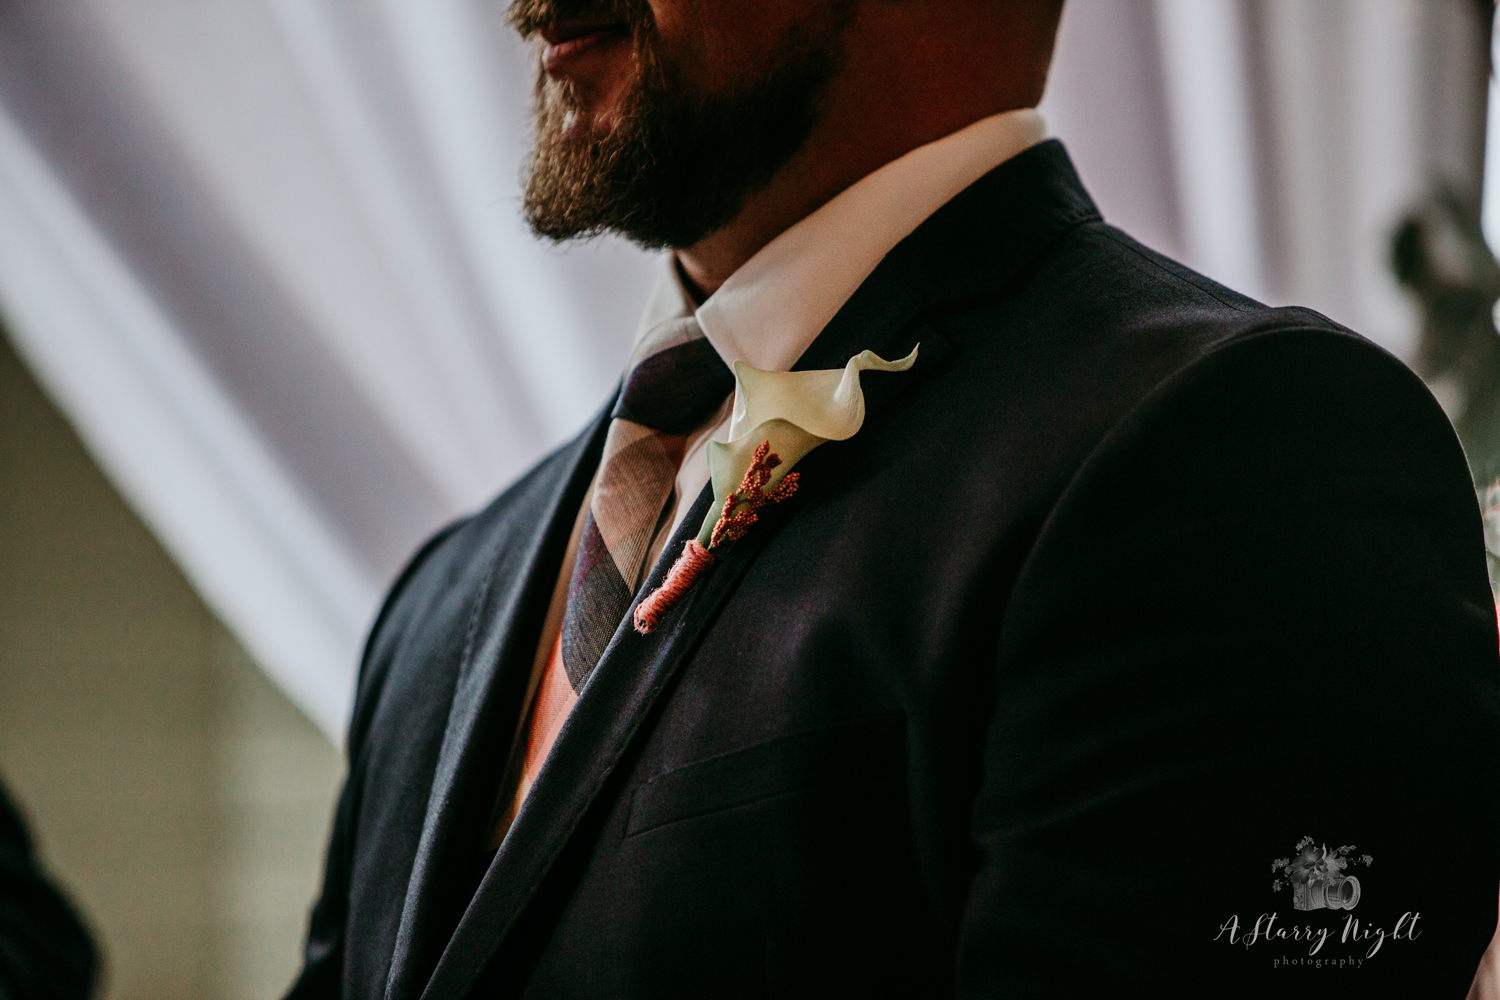 Groom's tuxedo, tie, and boutonniere during wedding ceremony